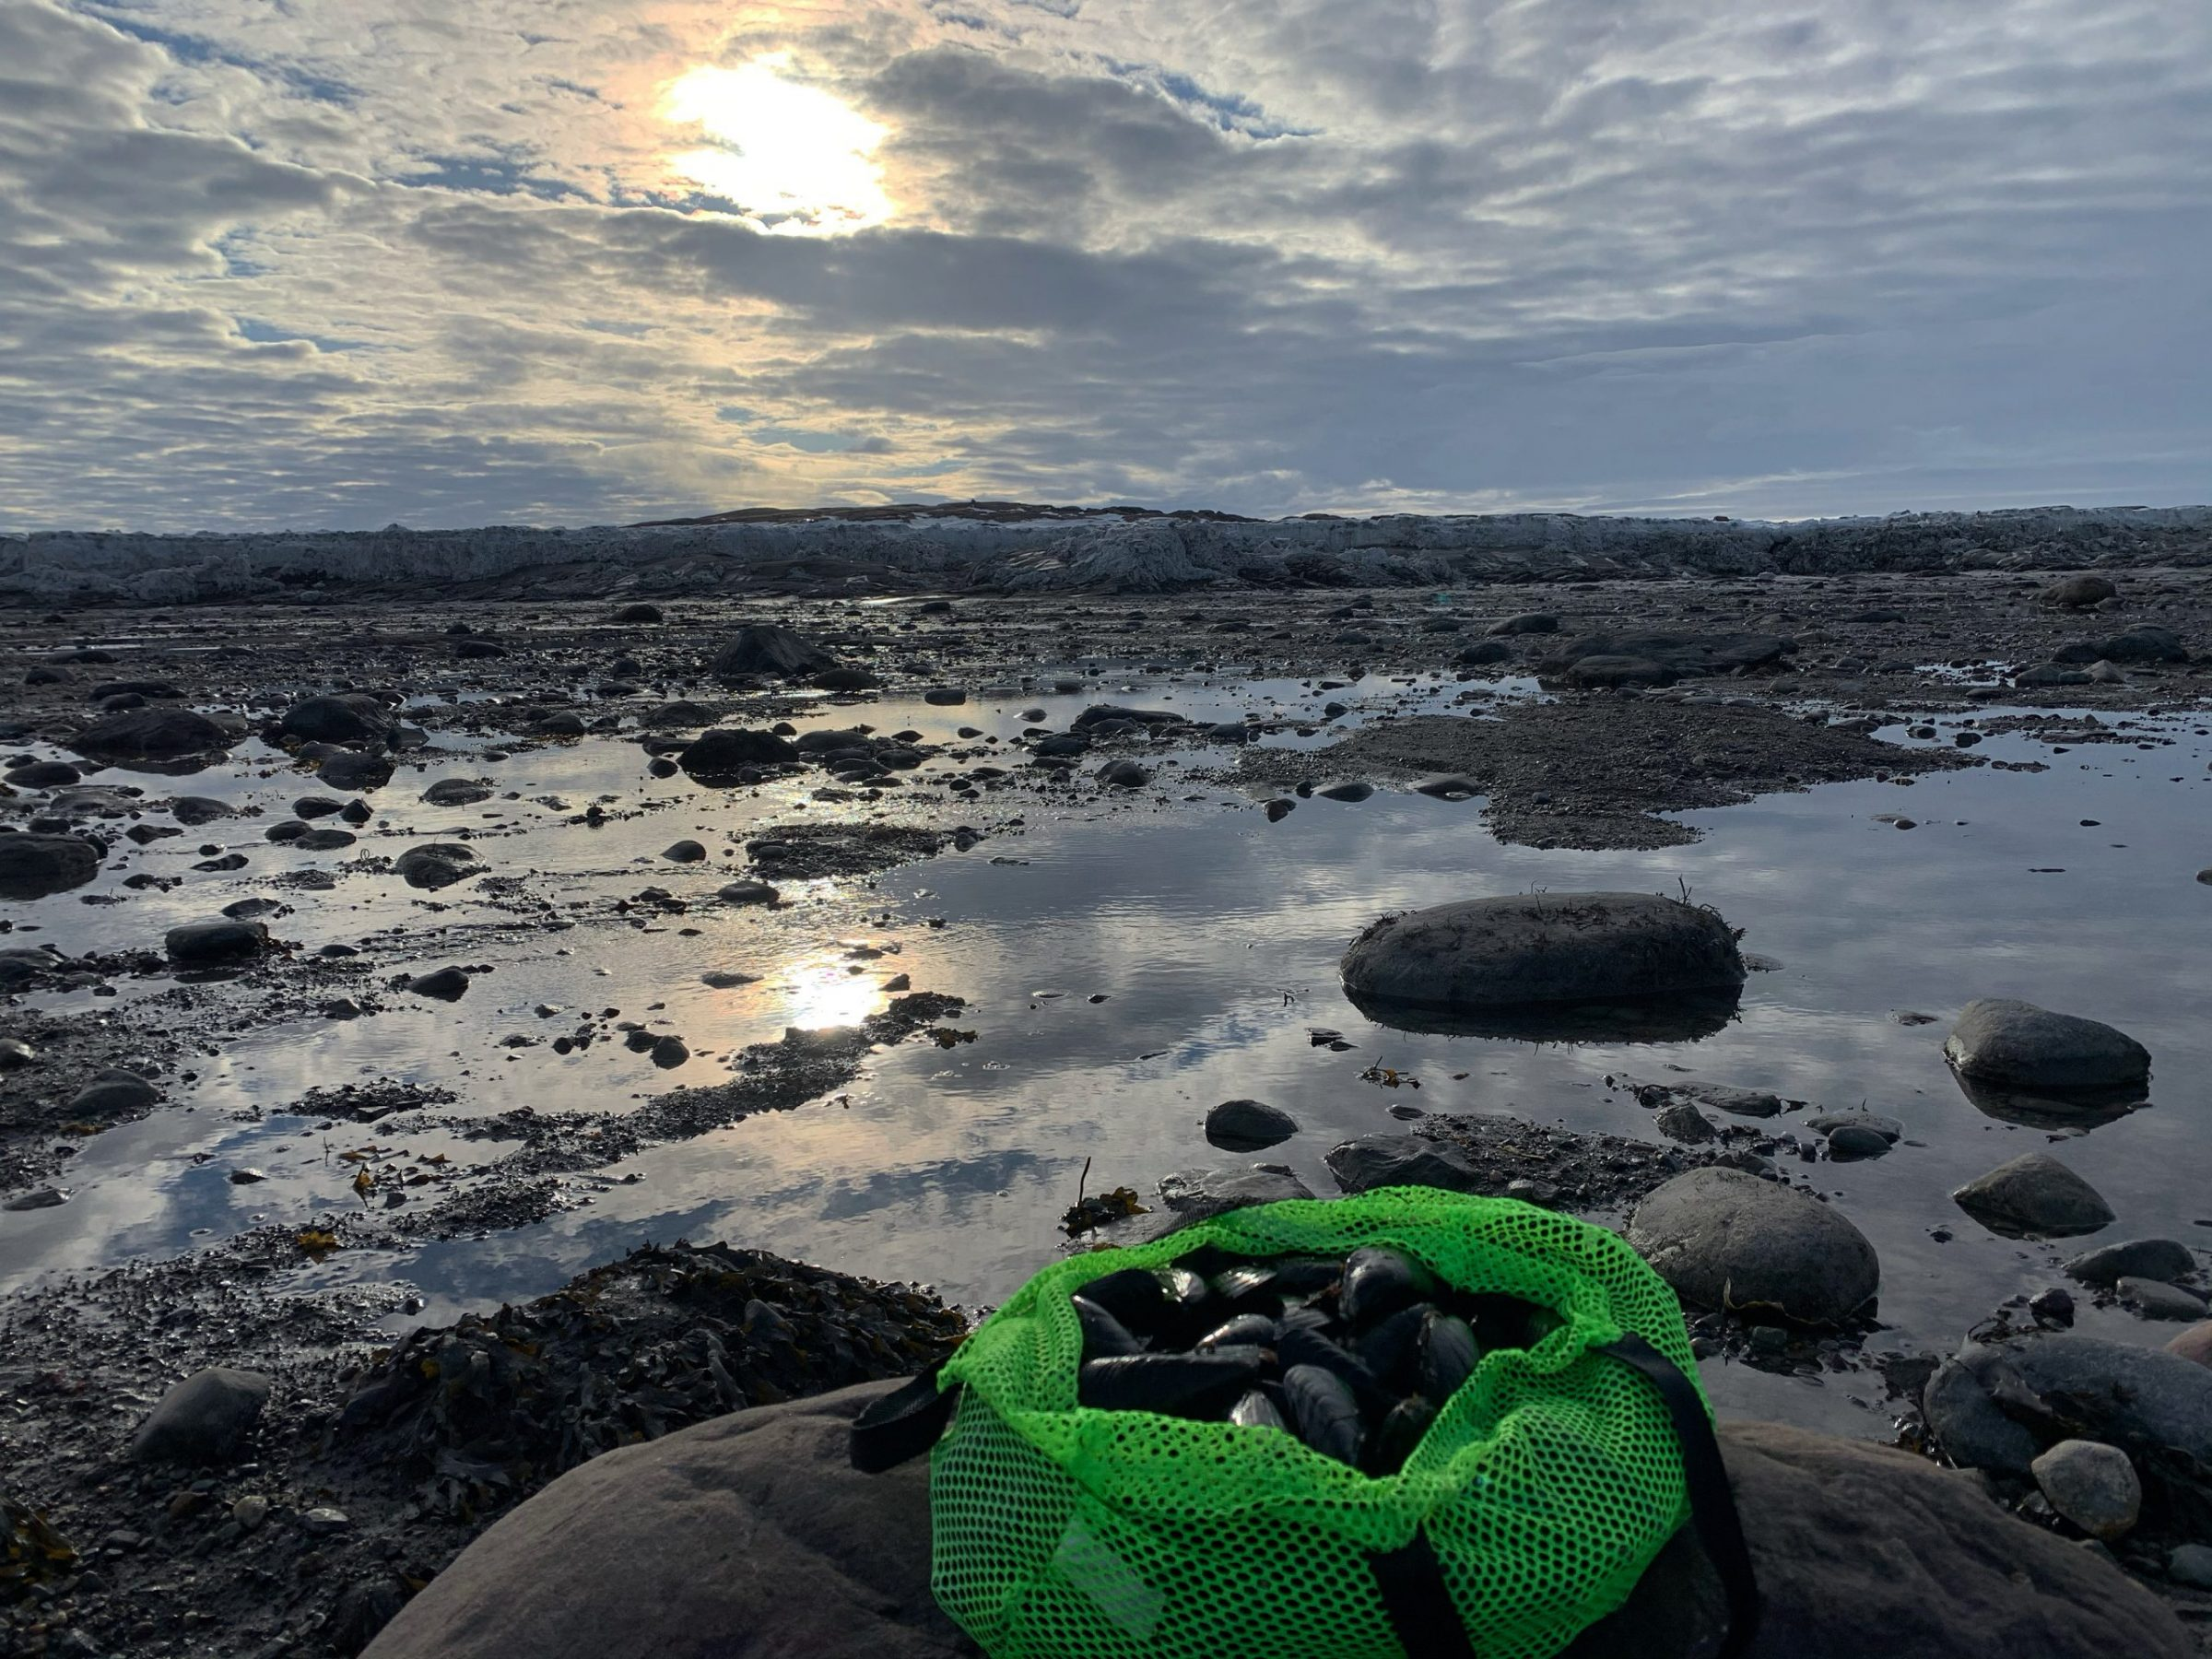 "Malaya Qaunirq Chapman took this photo while mussel picking during a snowmobile trip from Kuujjuaq to Kuujjuarusiq, or Dry Bay, on April 13. ""I've never gone springtime mussel picking, where the ice and snow are completely visible from the shore. The fresh crisp salty air was so refreshing!"" she writes. (Photo by Malaya Qaunirq Chapman)"